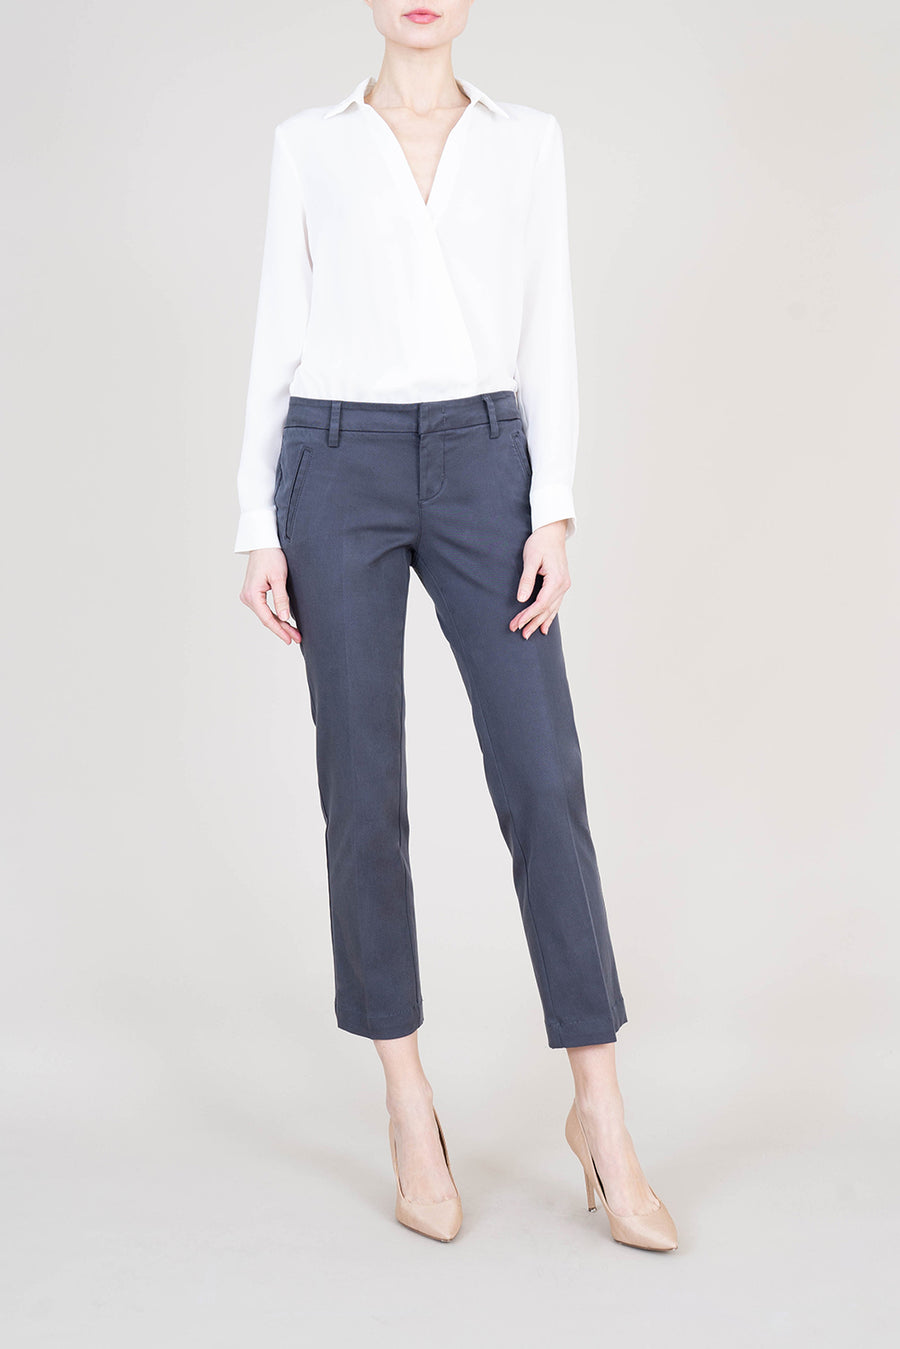 Francis Straight Ankle Trouser - level99jeans